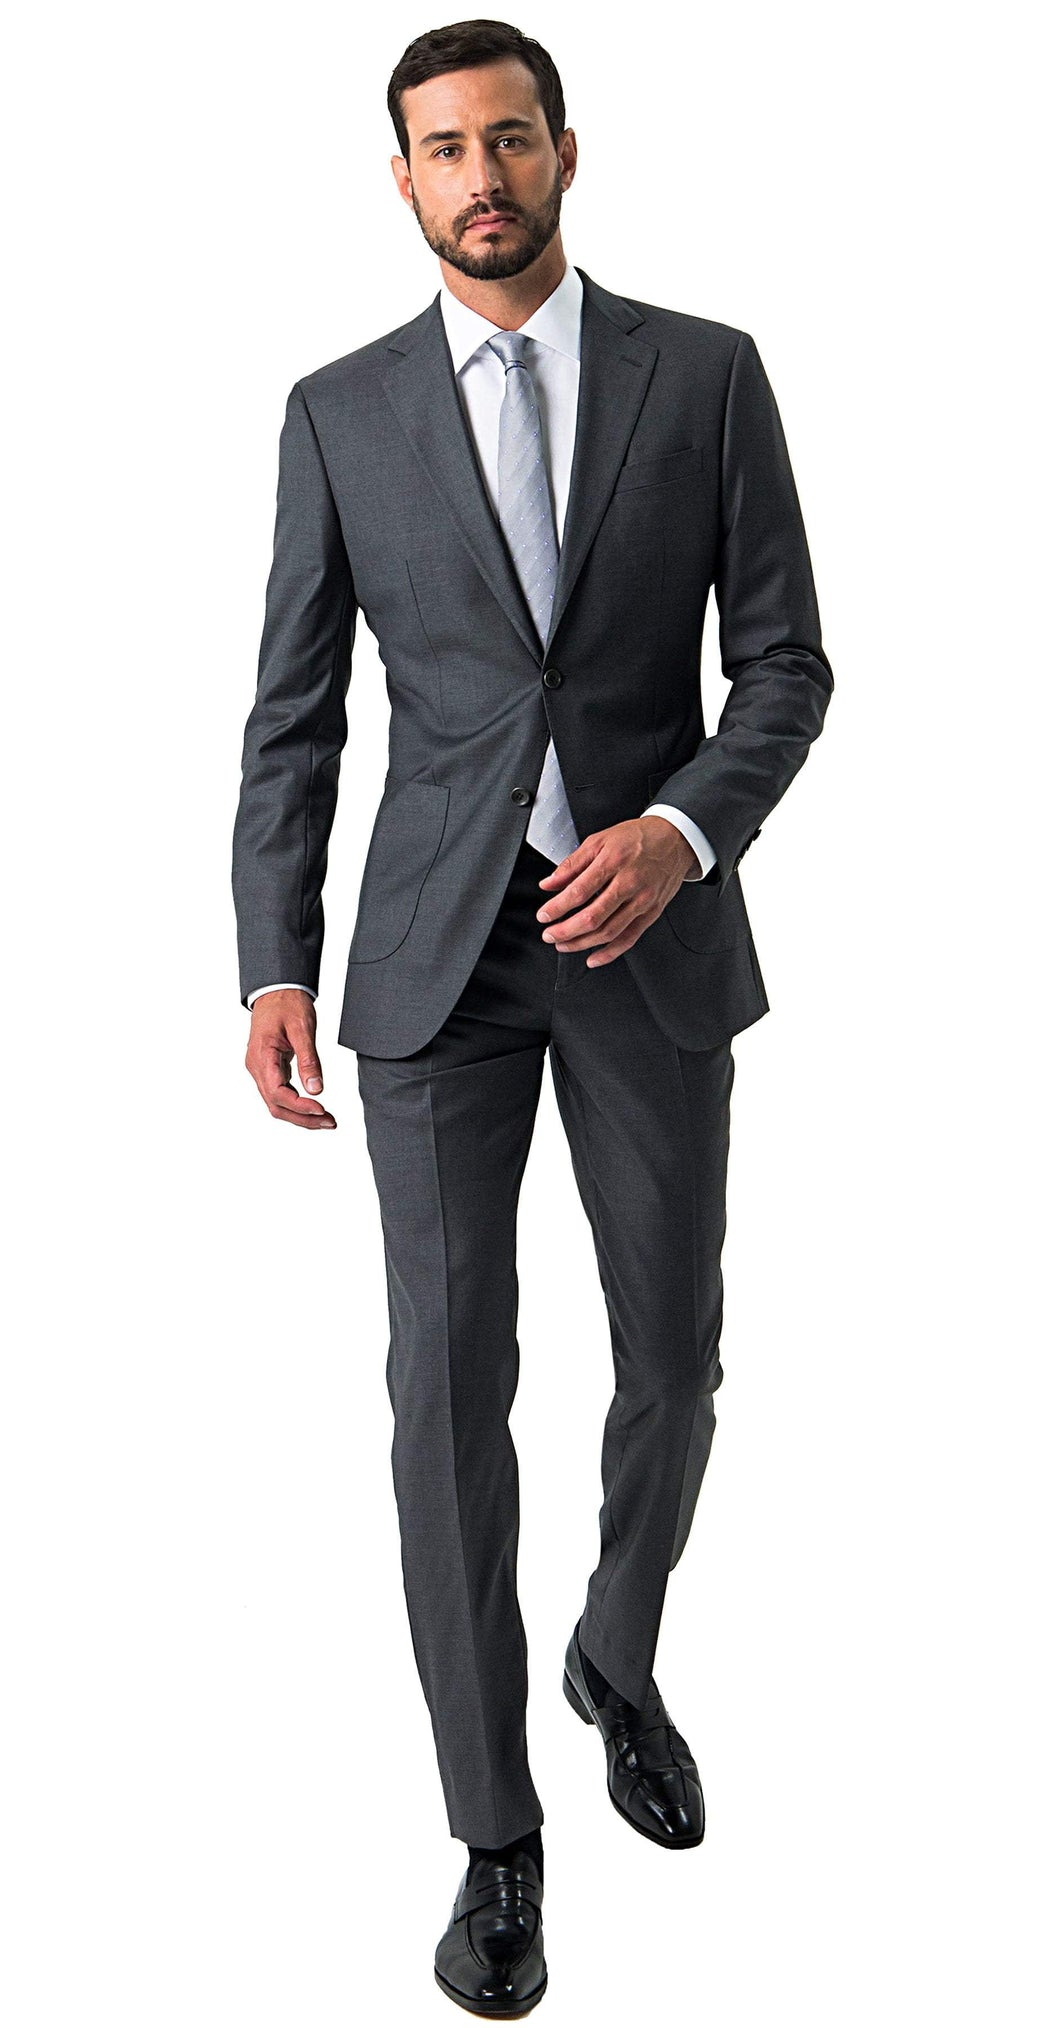 Loro Piana Suit Wish Super 170s Grey Suit